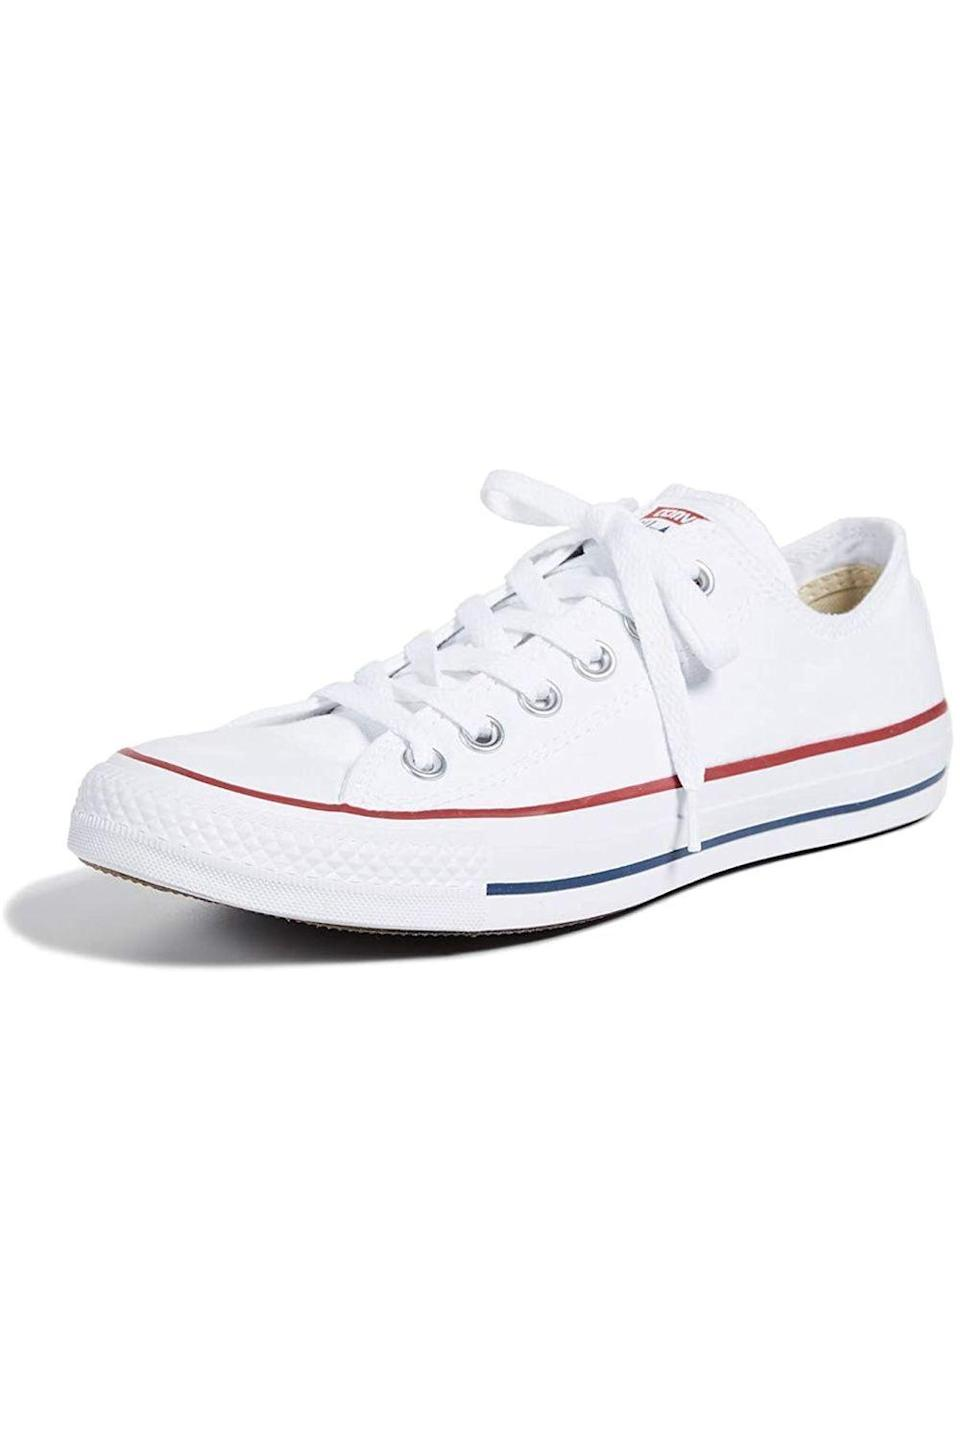 """<p><strong>Converse</strong></p><p>amazon.com</p><p><strong>$69.99</strong></p><p><a href=""""https://www.amazon.com/dp/B01LZTOSEE?tag=syn-yahoo-20&ascsubtag=%5Bartid%7C10049.g.36149947%5Bsrc%7Cyahoo-us"""" rel=""""nofollow noopener"""" target=""""_blank"""" data-ylk=""""slk:Shop Now"""" class=""""link rapid-noclick-resp"""">Shop Now</a></p><p>You can truly never go wrong with giving a pair of classic sneakers to anyone on your list, and it doesn't get more classic than a pair of Chucks.</p>"""